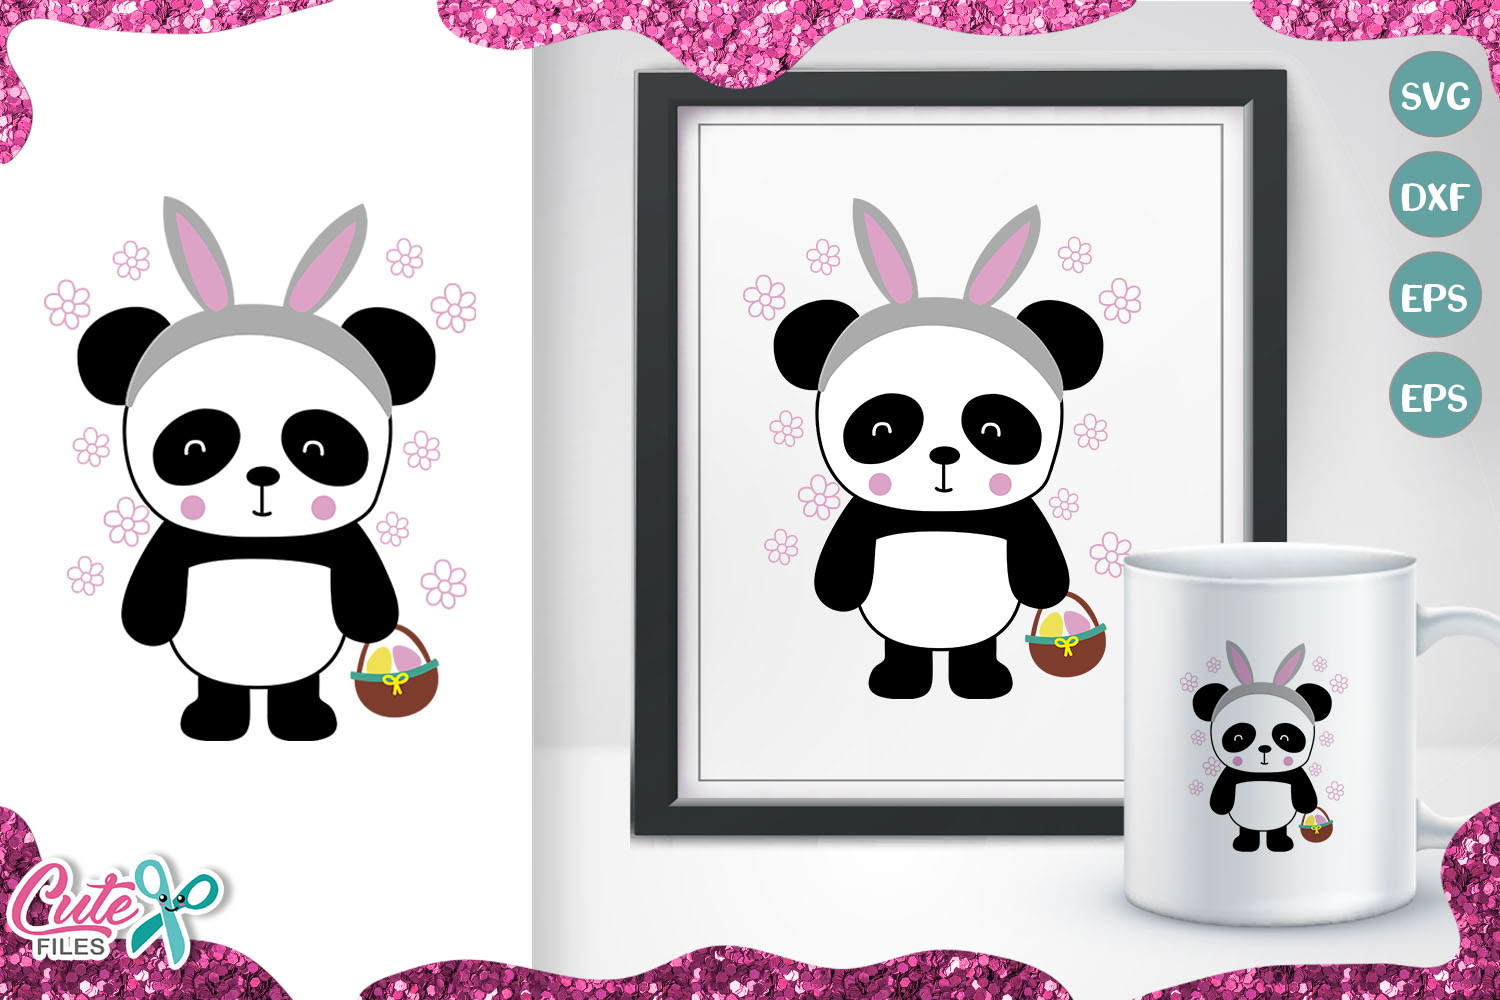 Download Free Panda With Bunny Ears Graphic By Cute Files Creative Fabrica for Cricut Explore, Silhouette and other cutting machines.